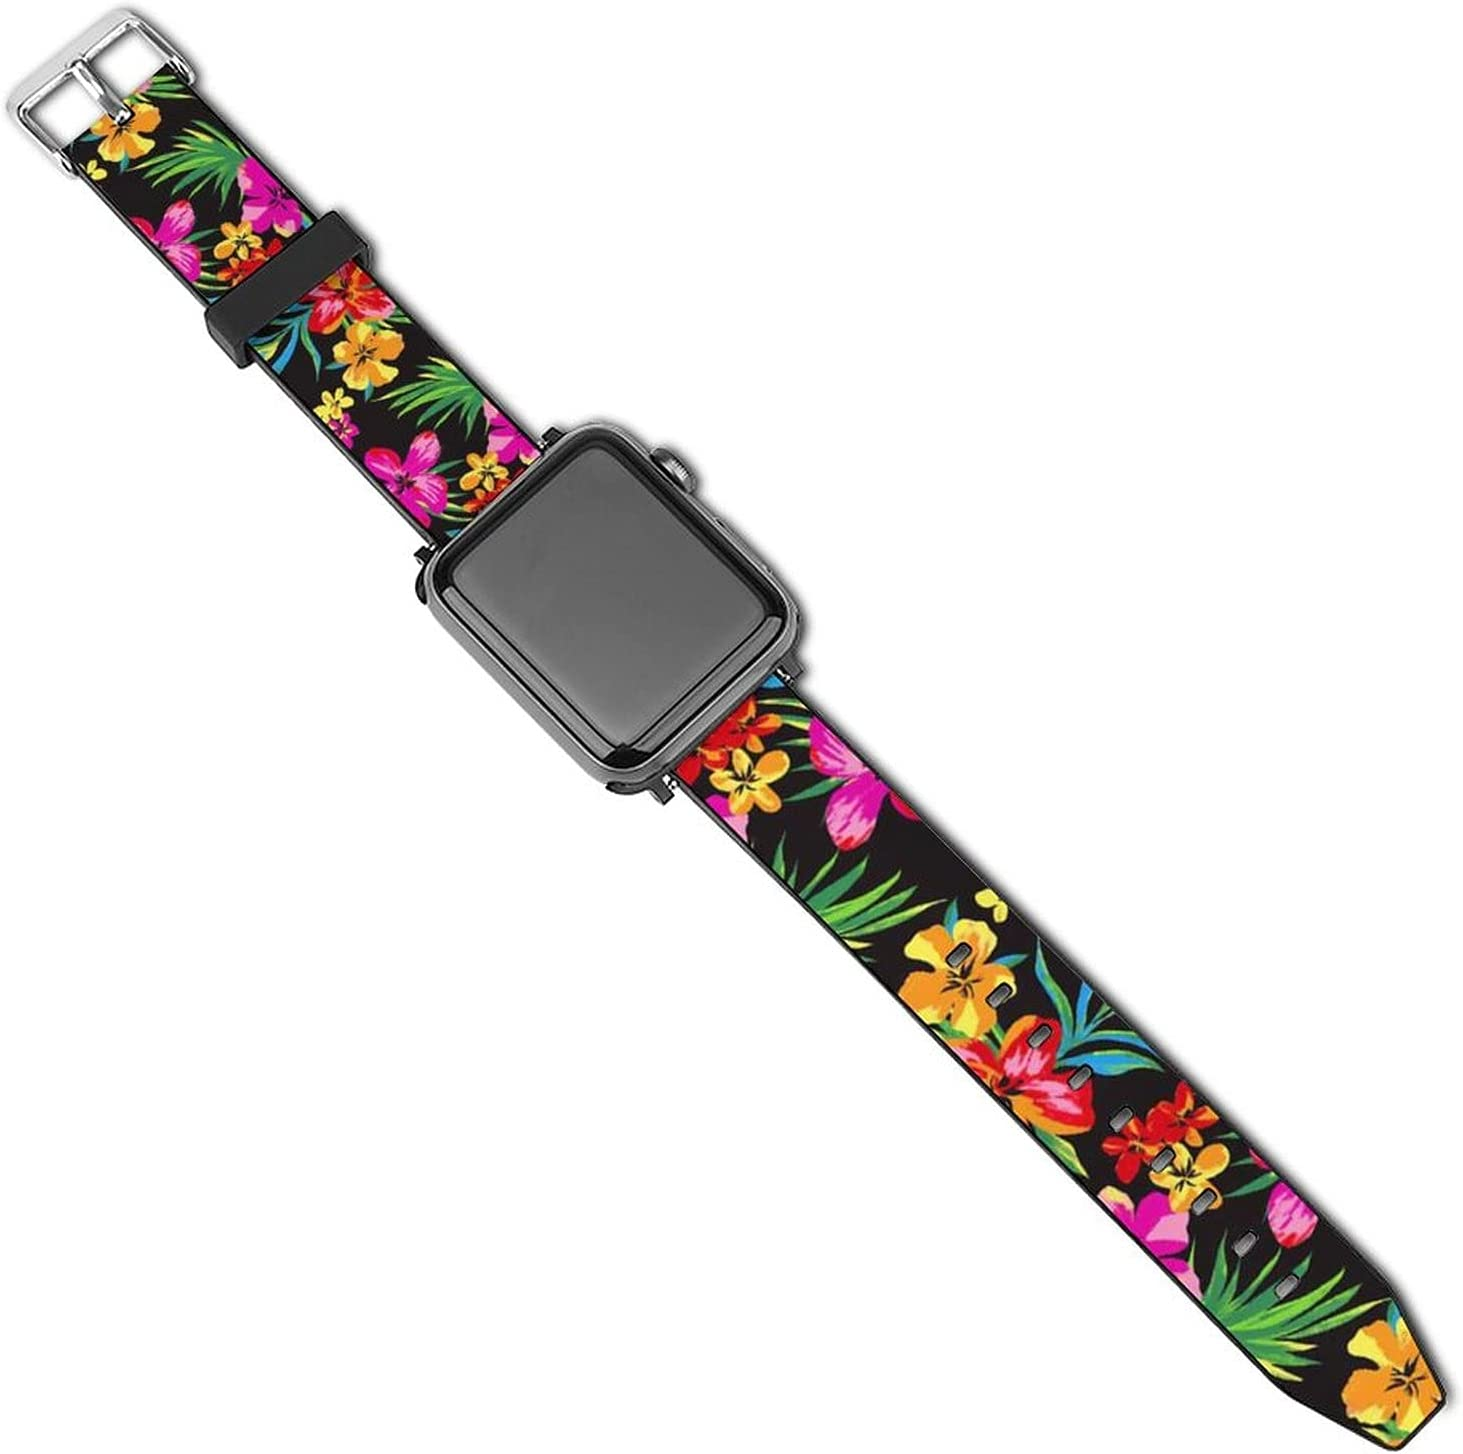 SWEET TANG Mens Women Hawaiian Colorful Flower Apple Watch Band 38mm/40mm, 42mm/44mm, Adjustable Protective Watch Bands Sport Bands, PU Leather Sport Replacement Strap